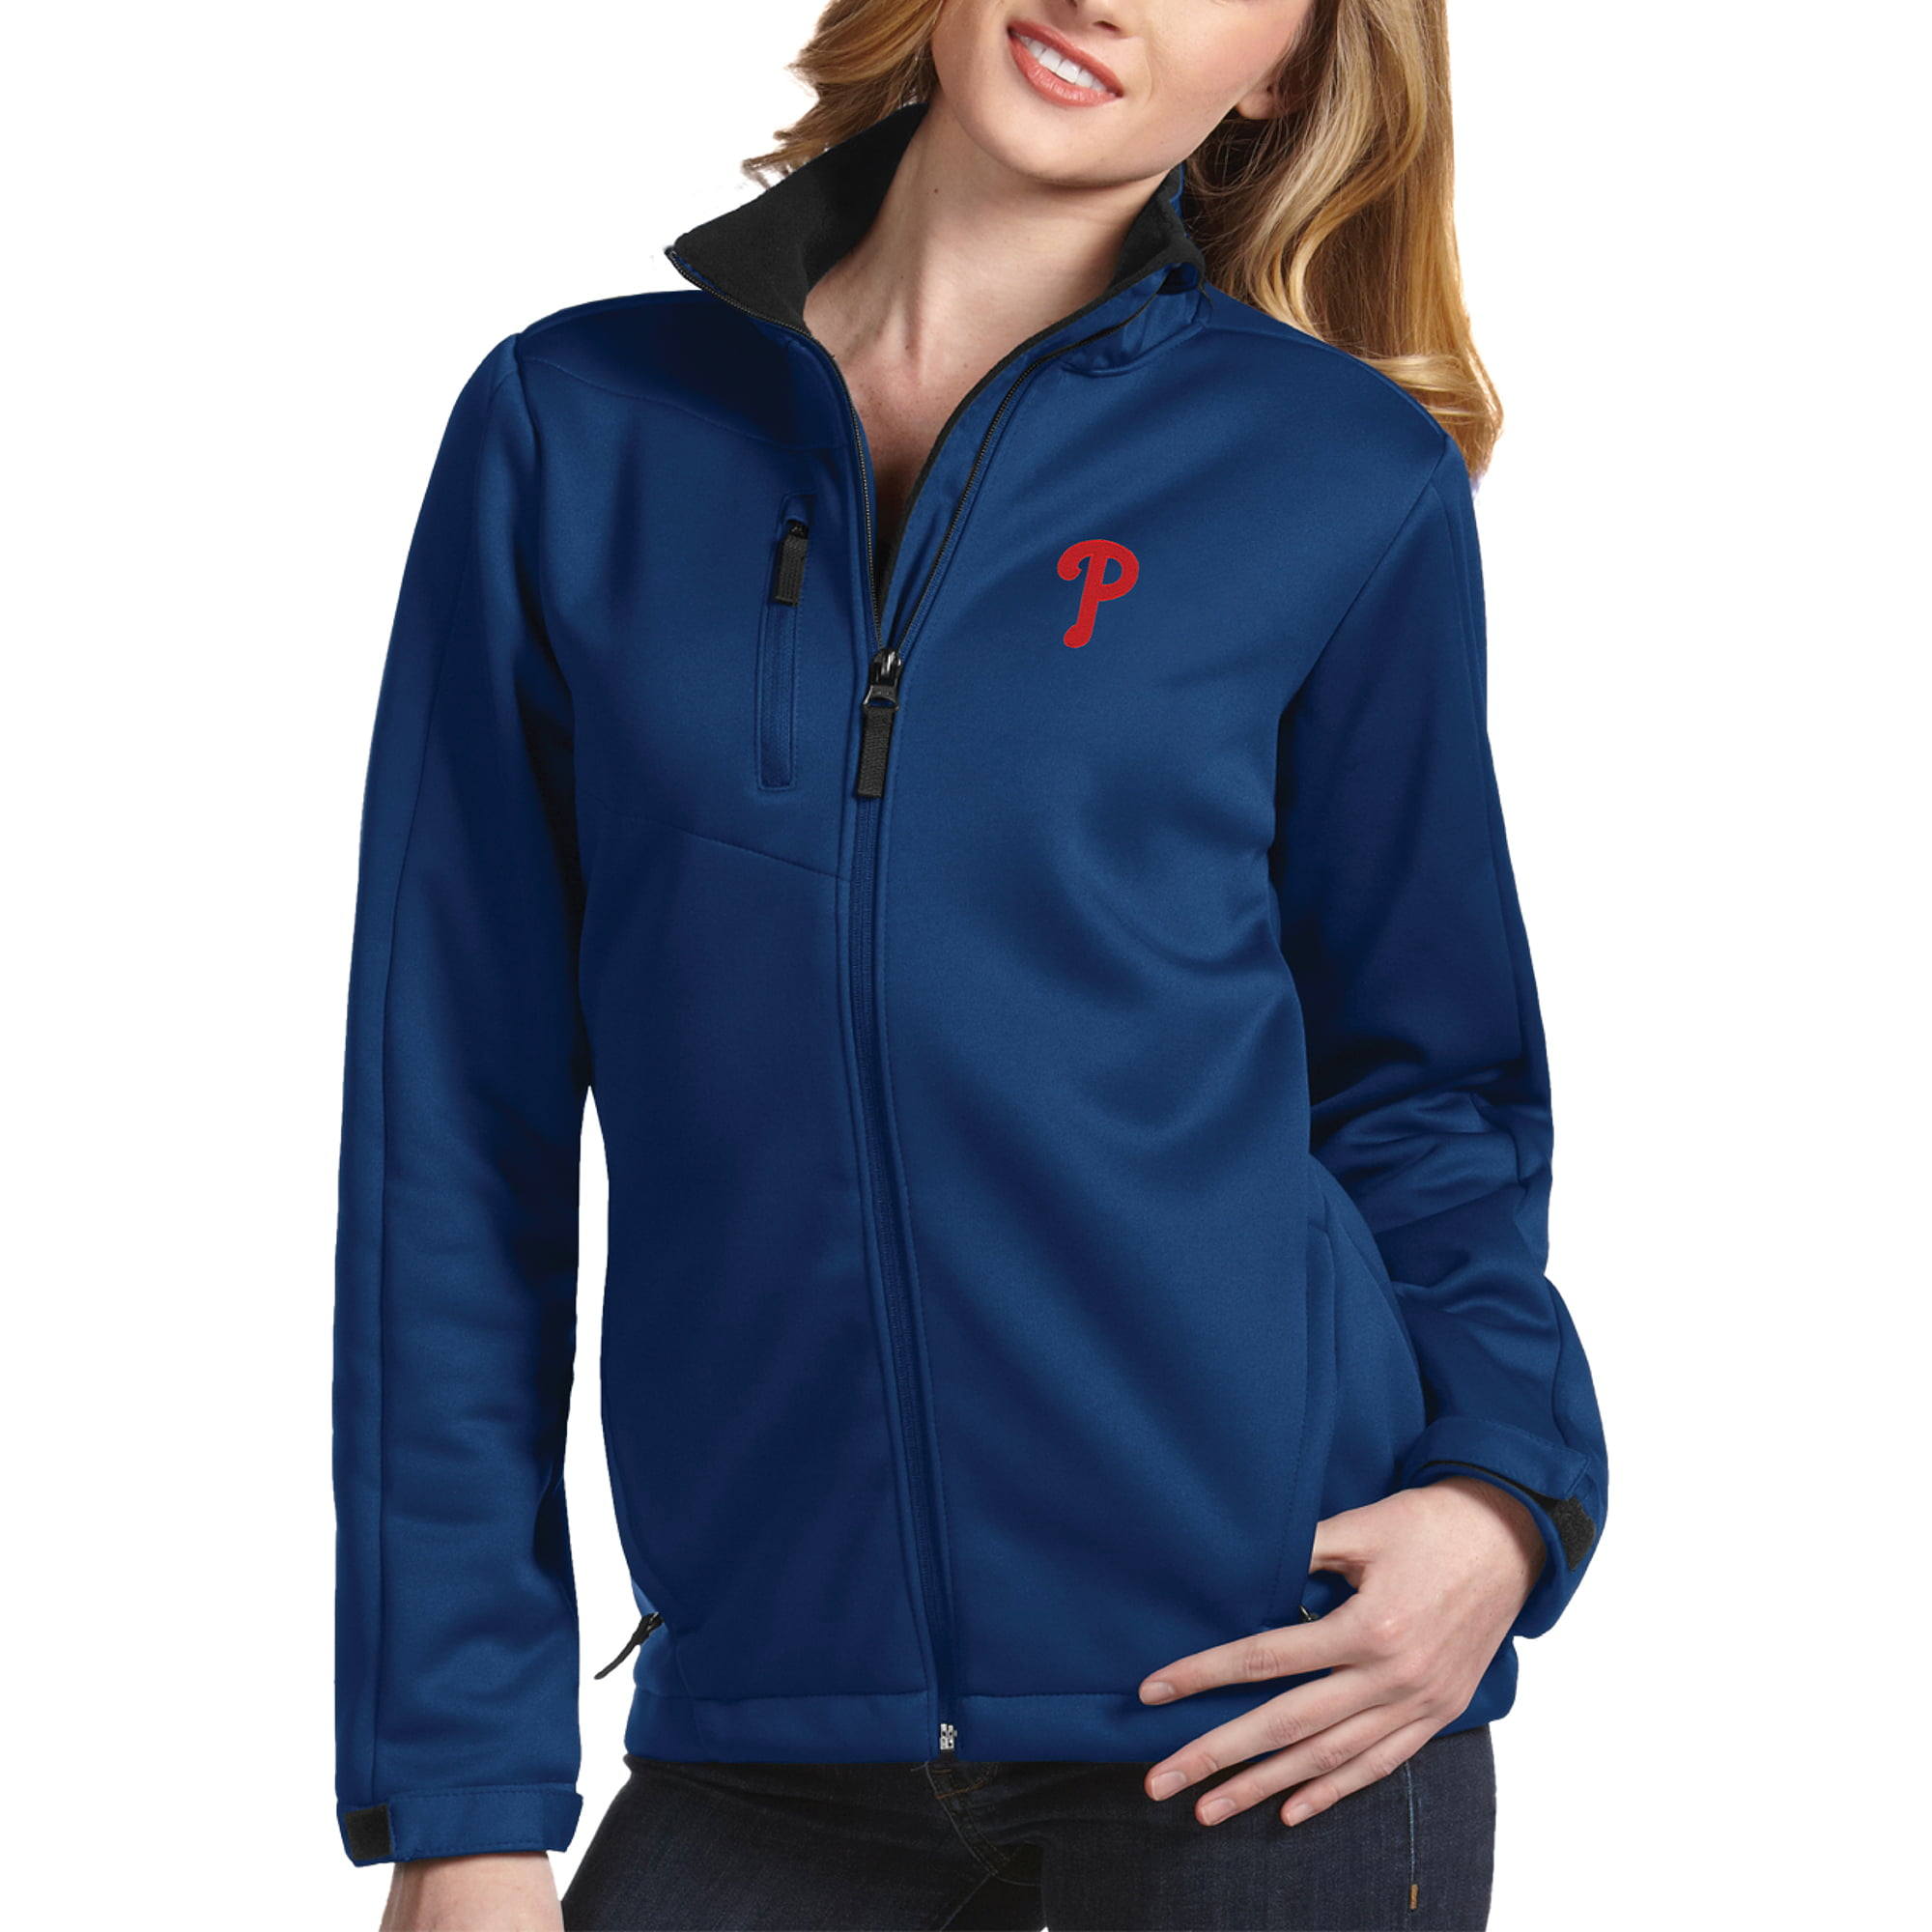 Philadelphia Phillies Antigua Women's Traverse Jacket Royal by ANTIGUA GROUP/ 22534